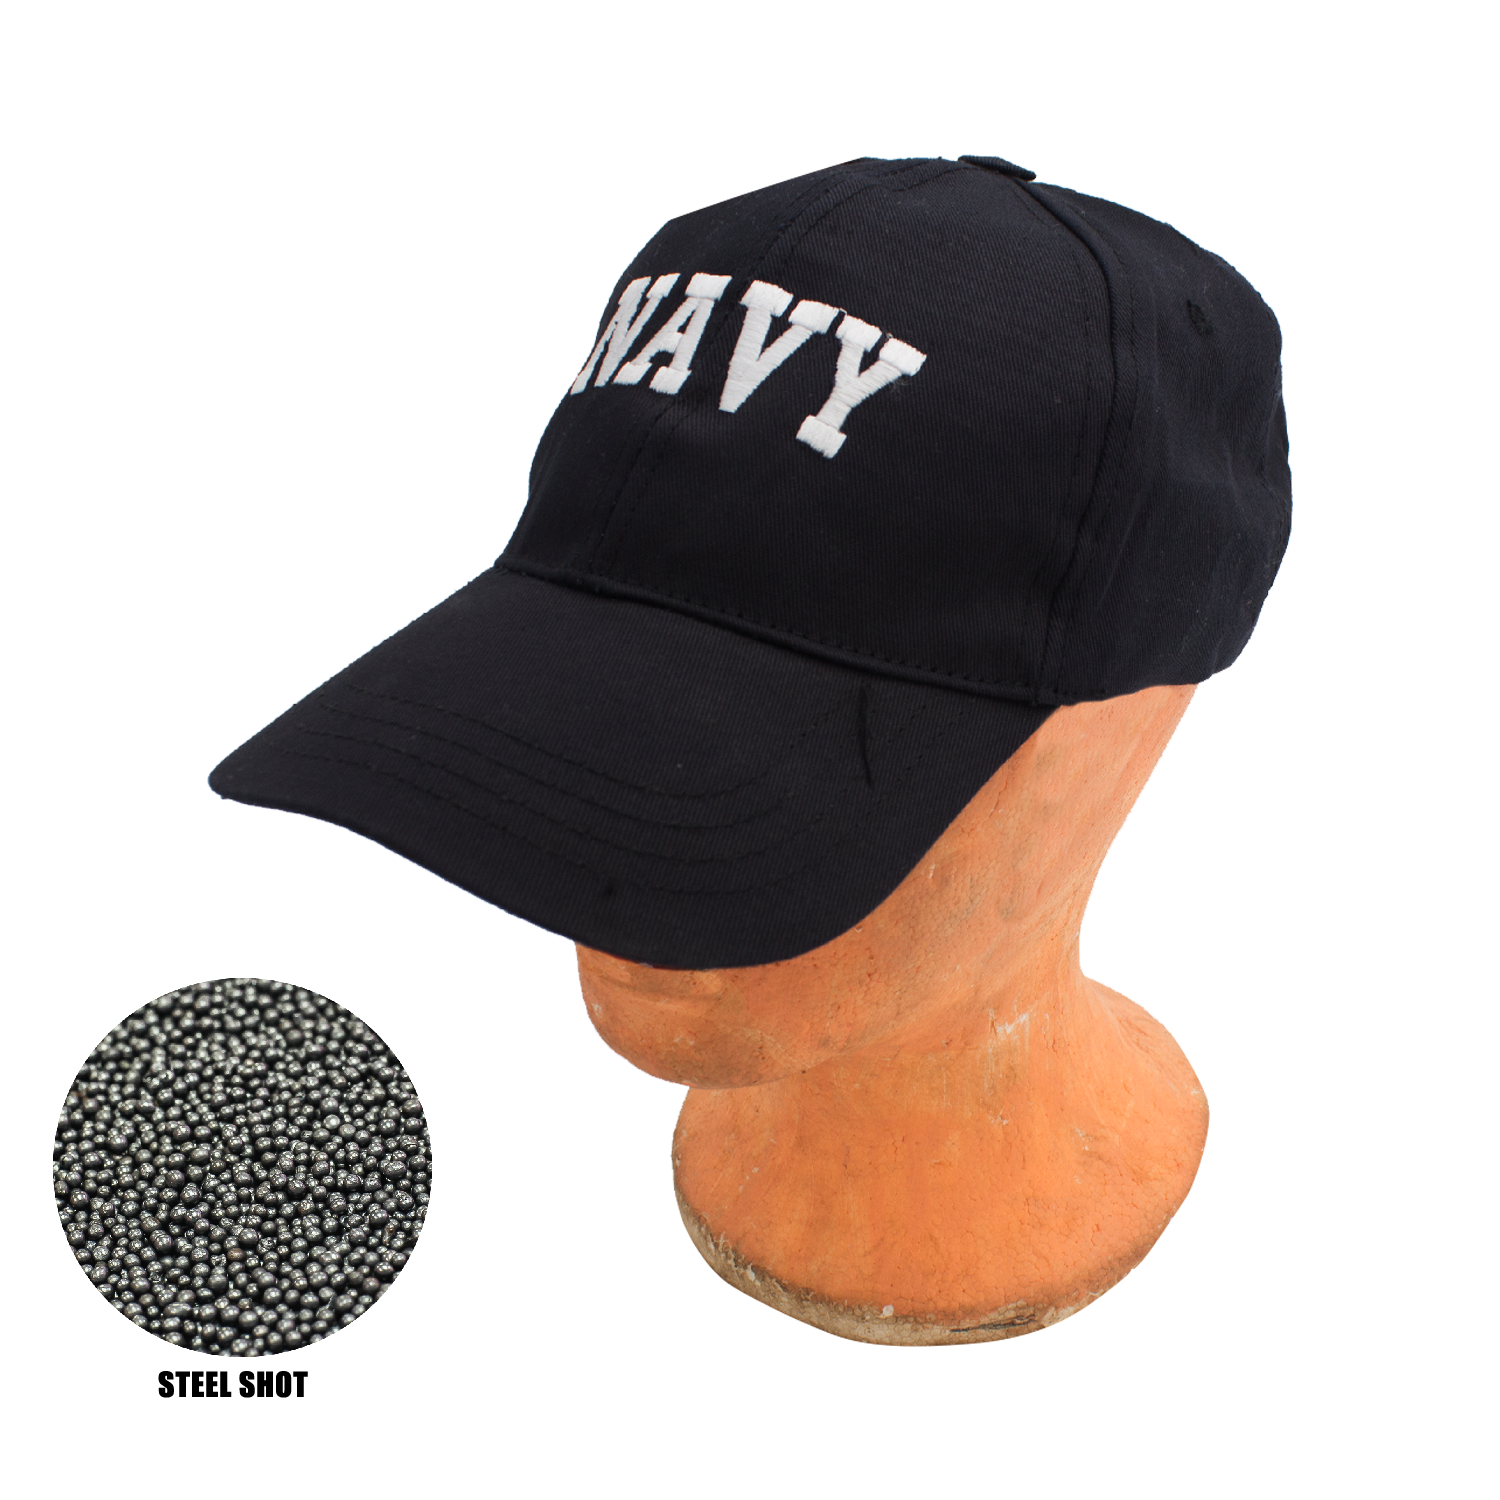 bce887dcc0 Public safety sap caps navy panther trading company panther wholesale png  1500x1500 Sap cap weaponized baseball